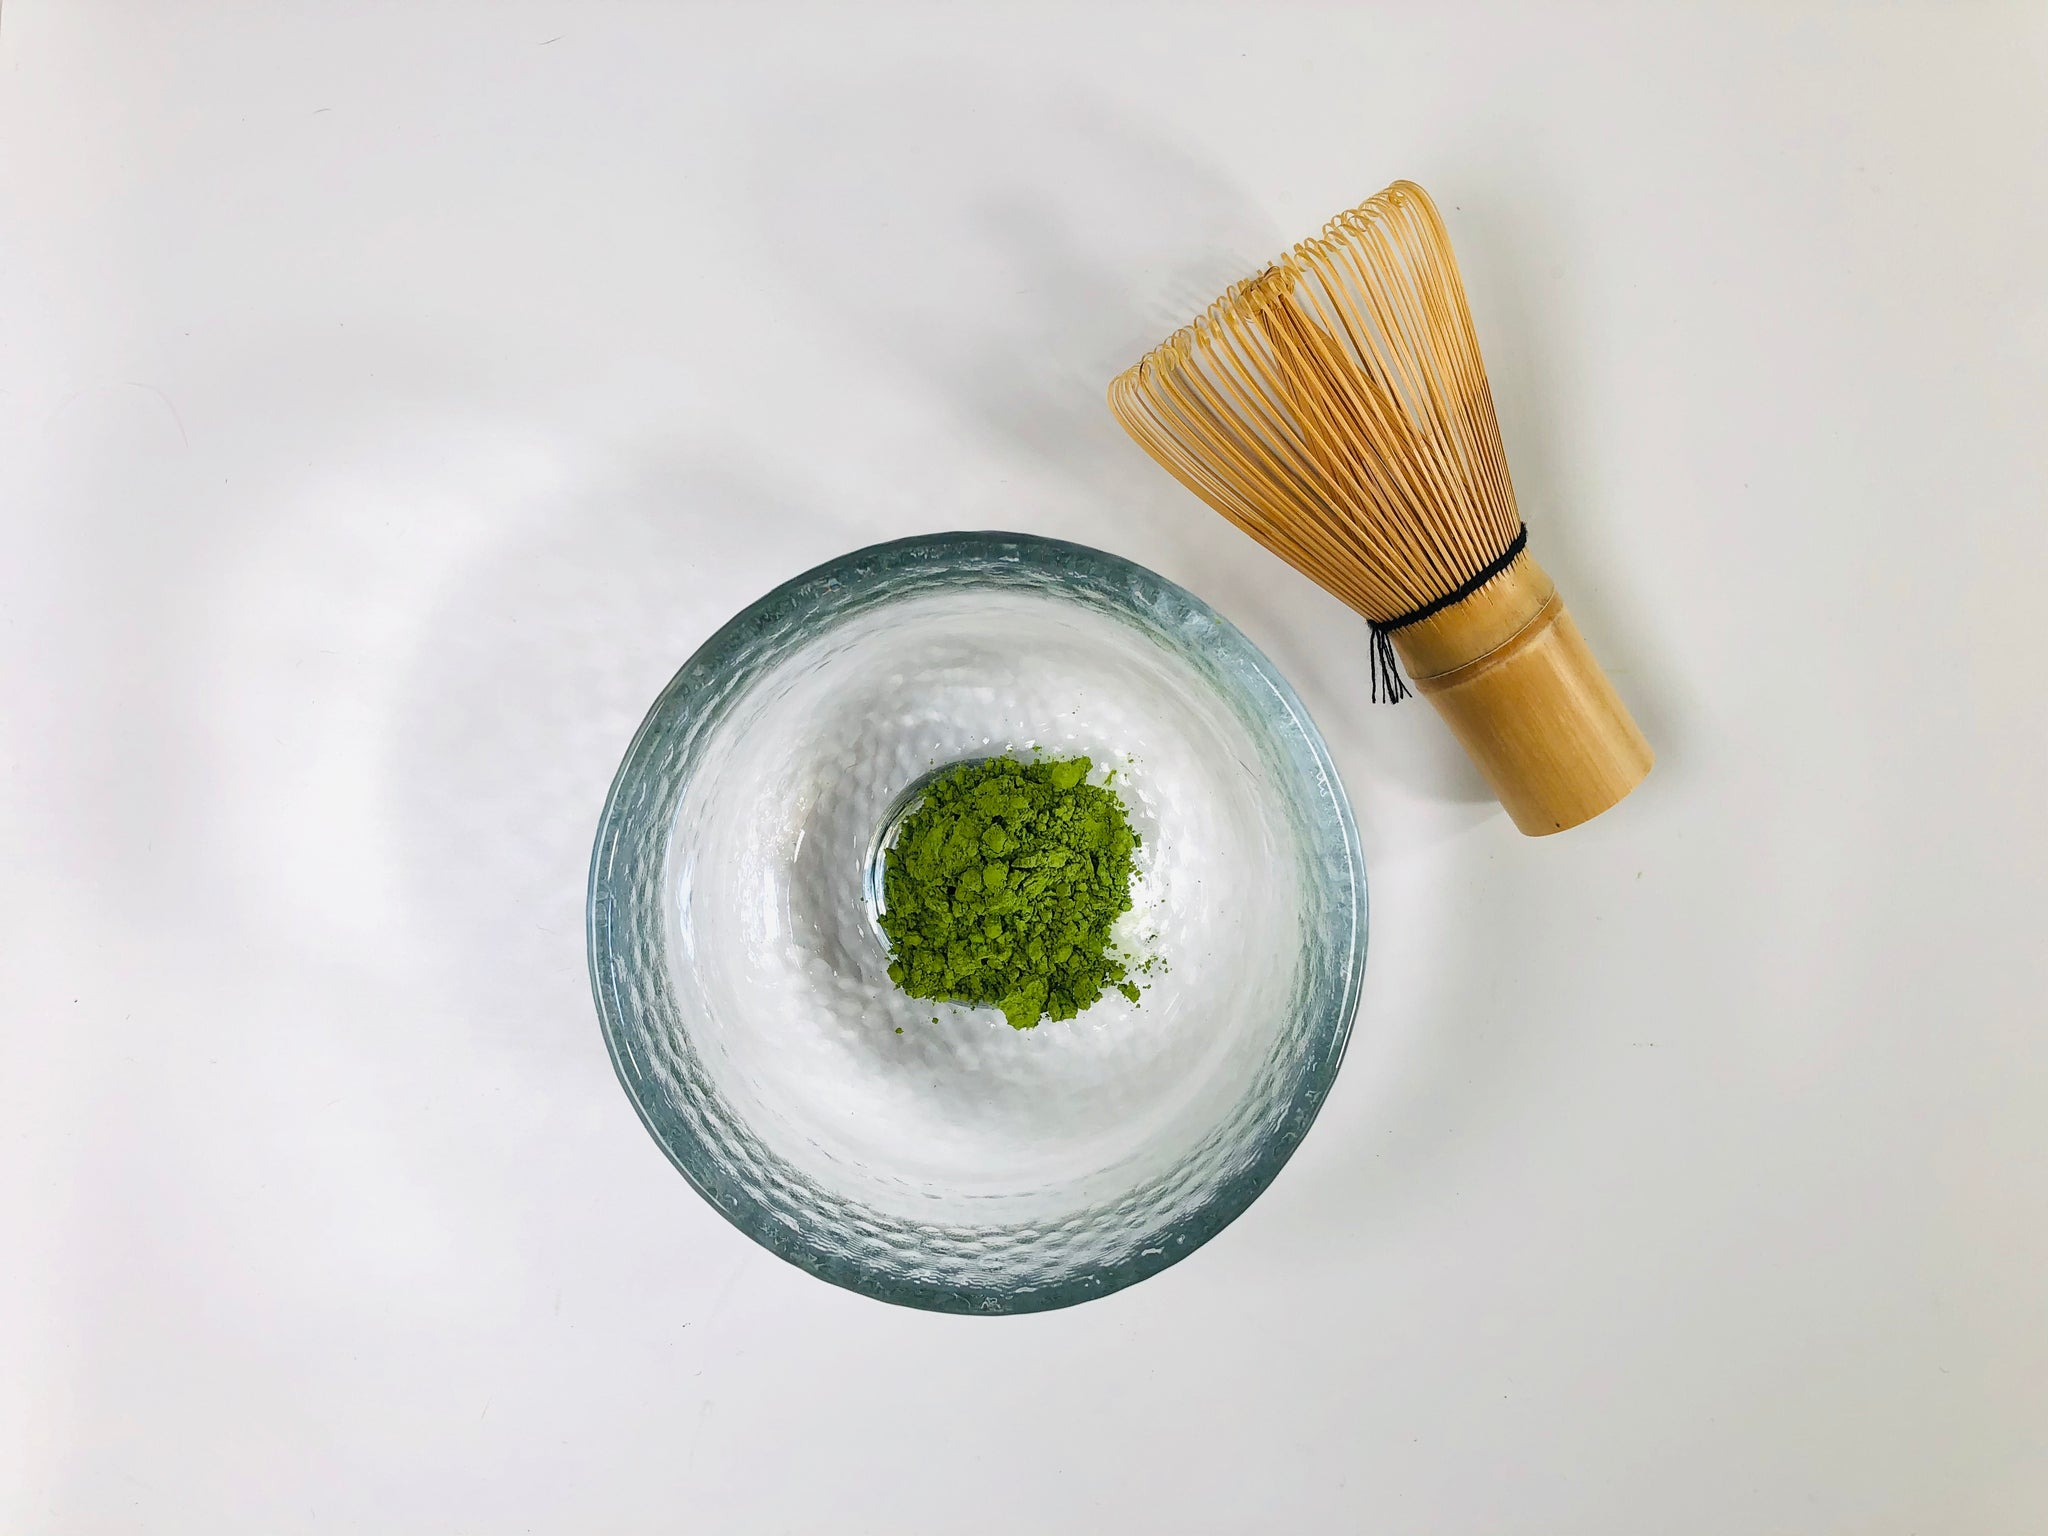 Matcha Powder in Bowl and Matcha Whisk